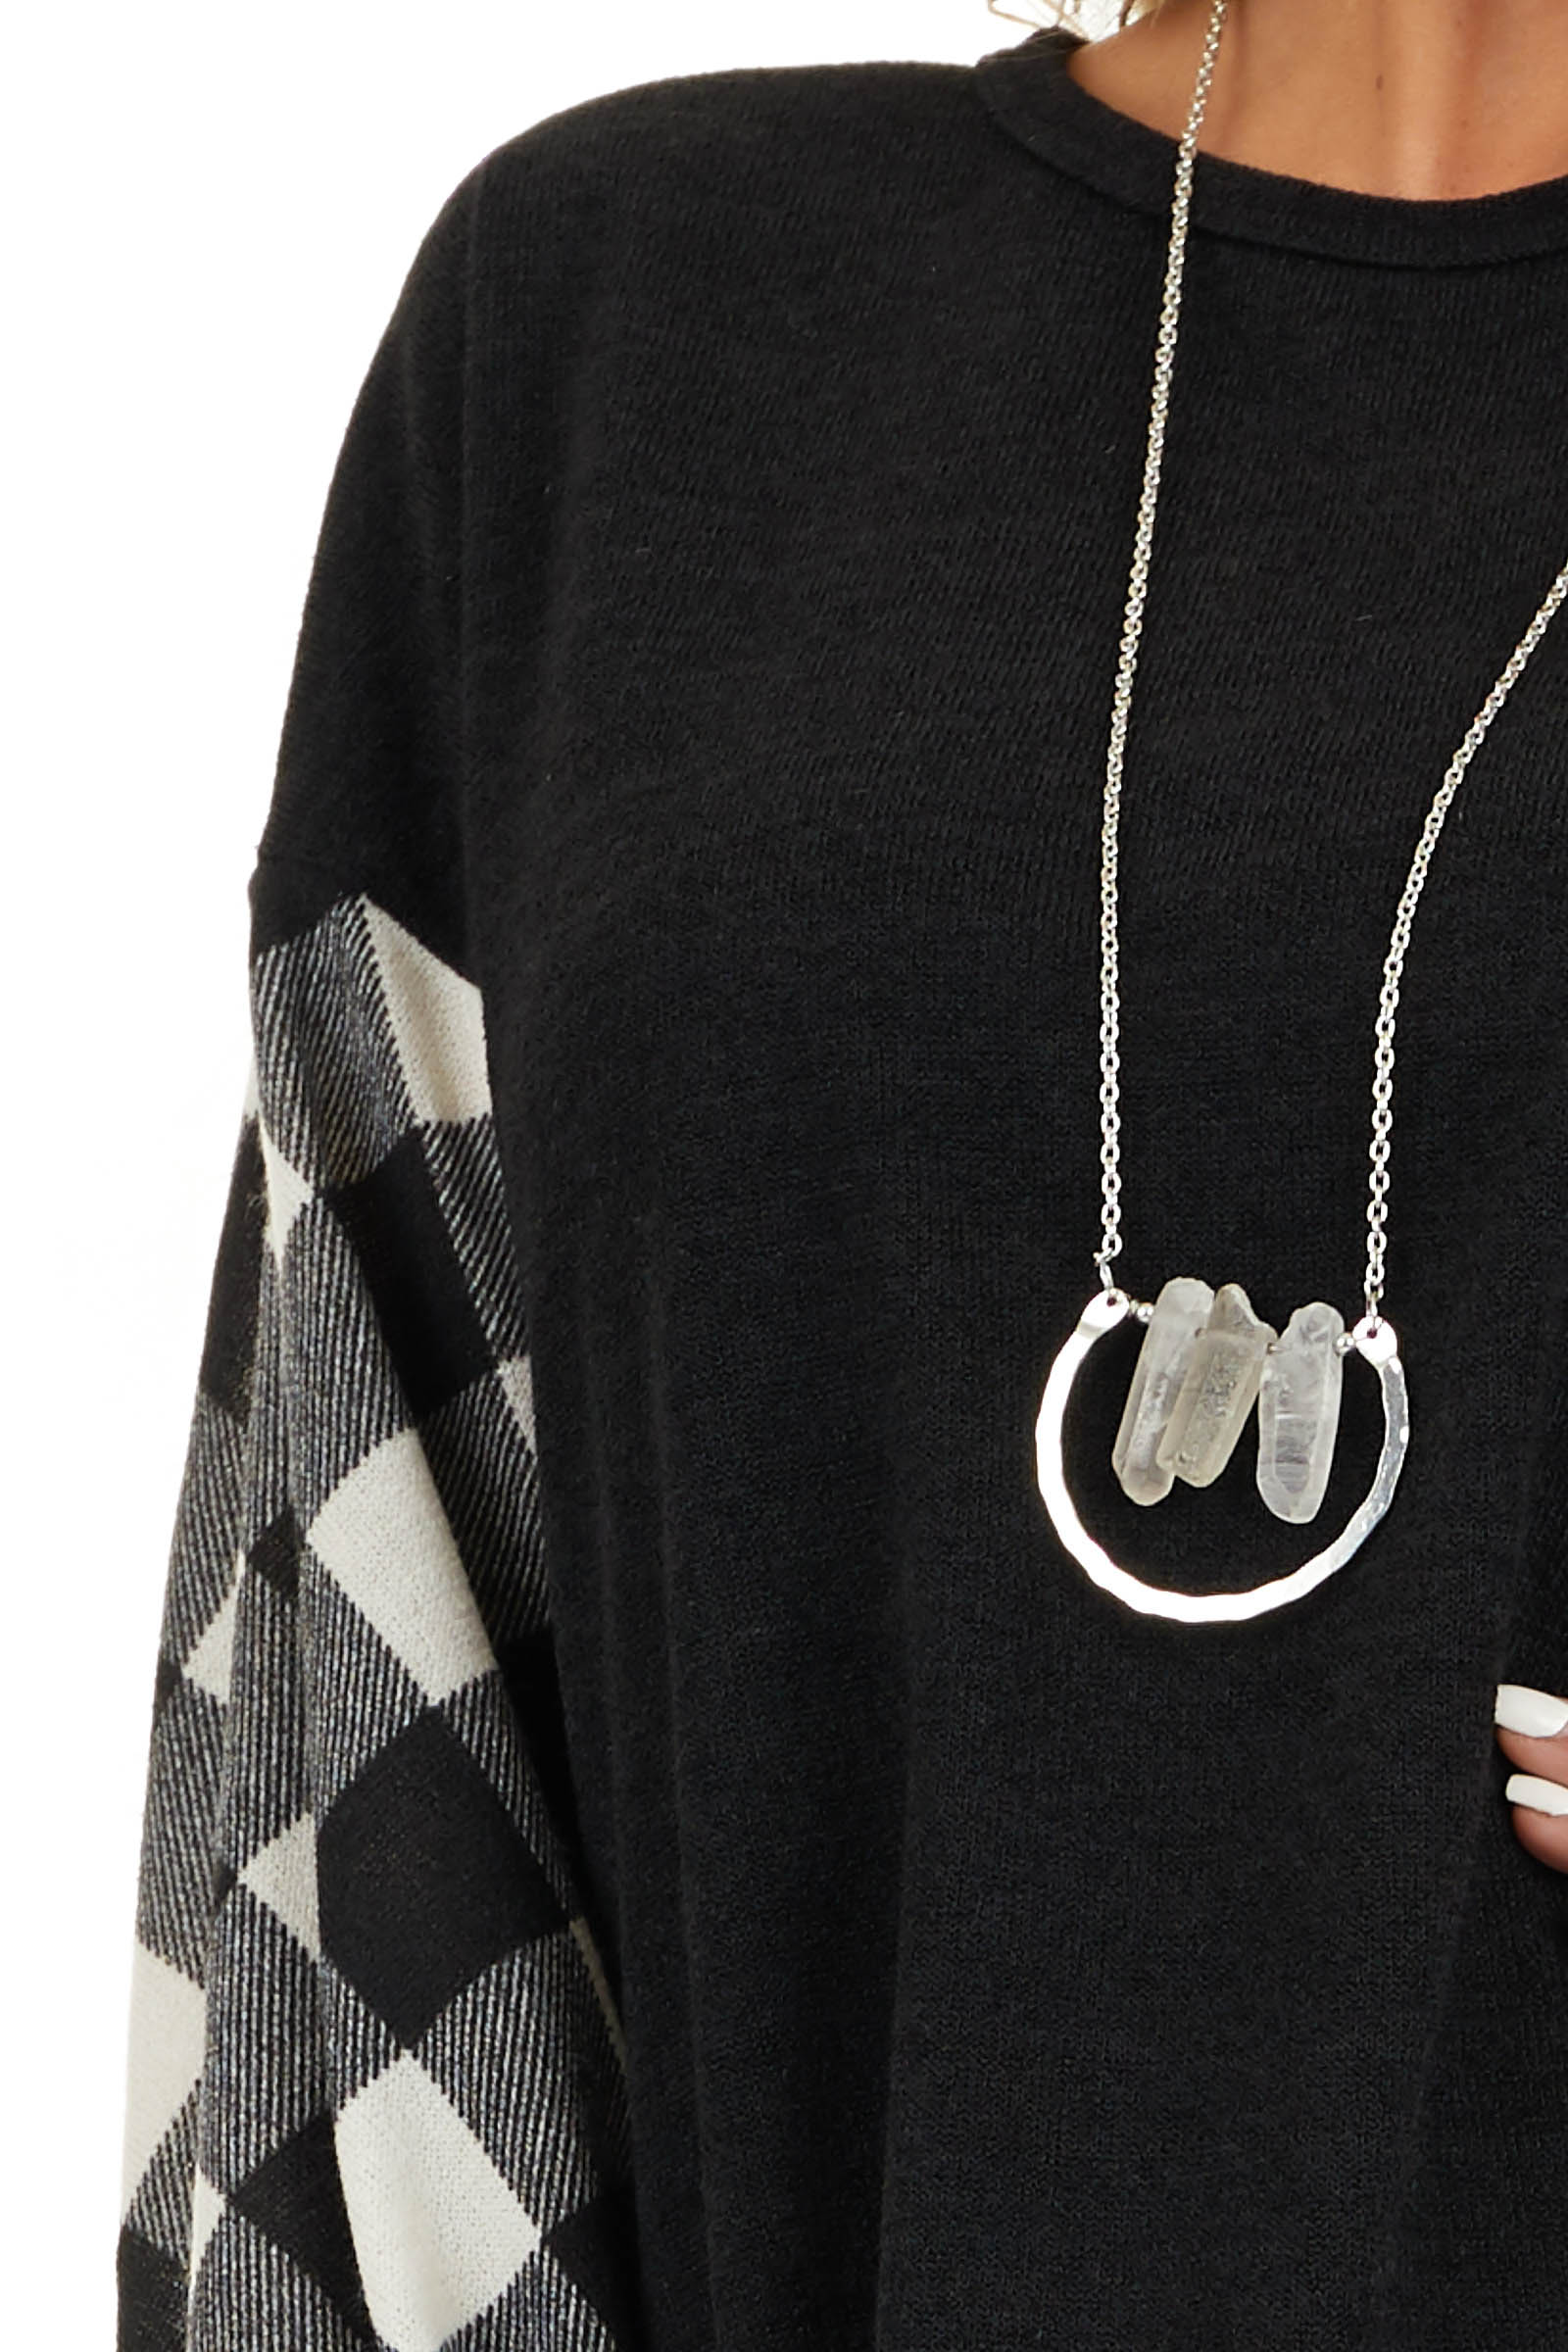 Black Top with Long Off White Buffalo Plaid Sleeves detail